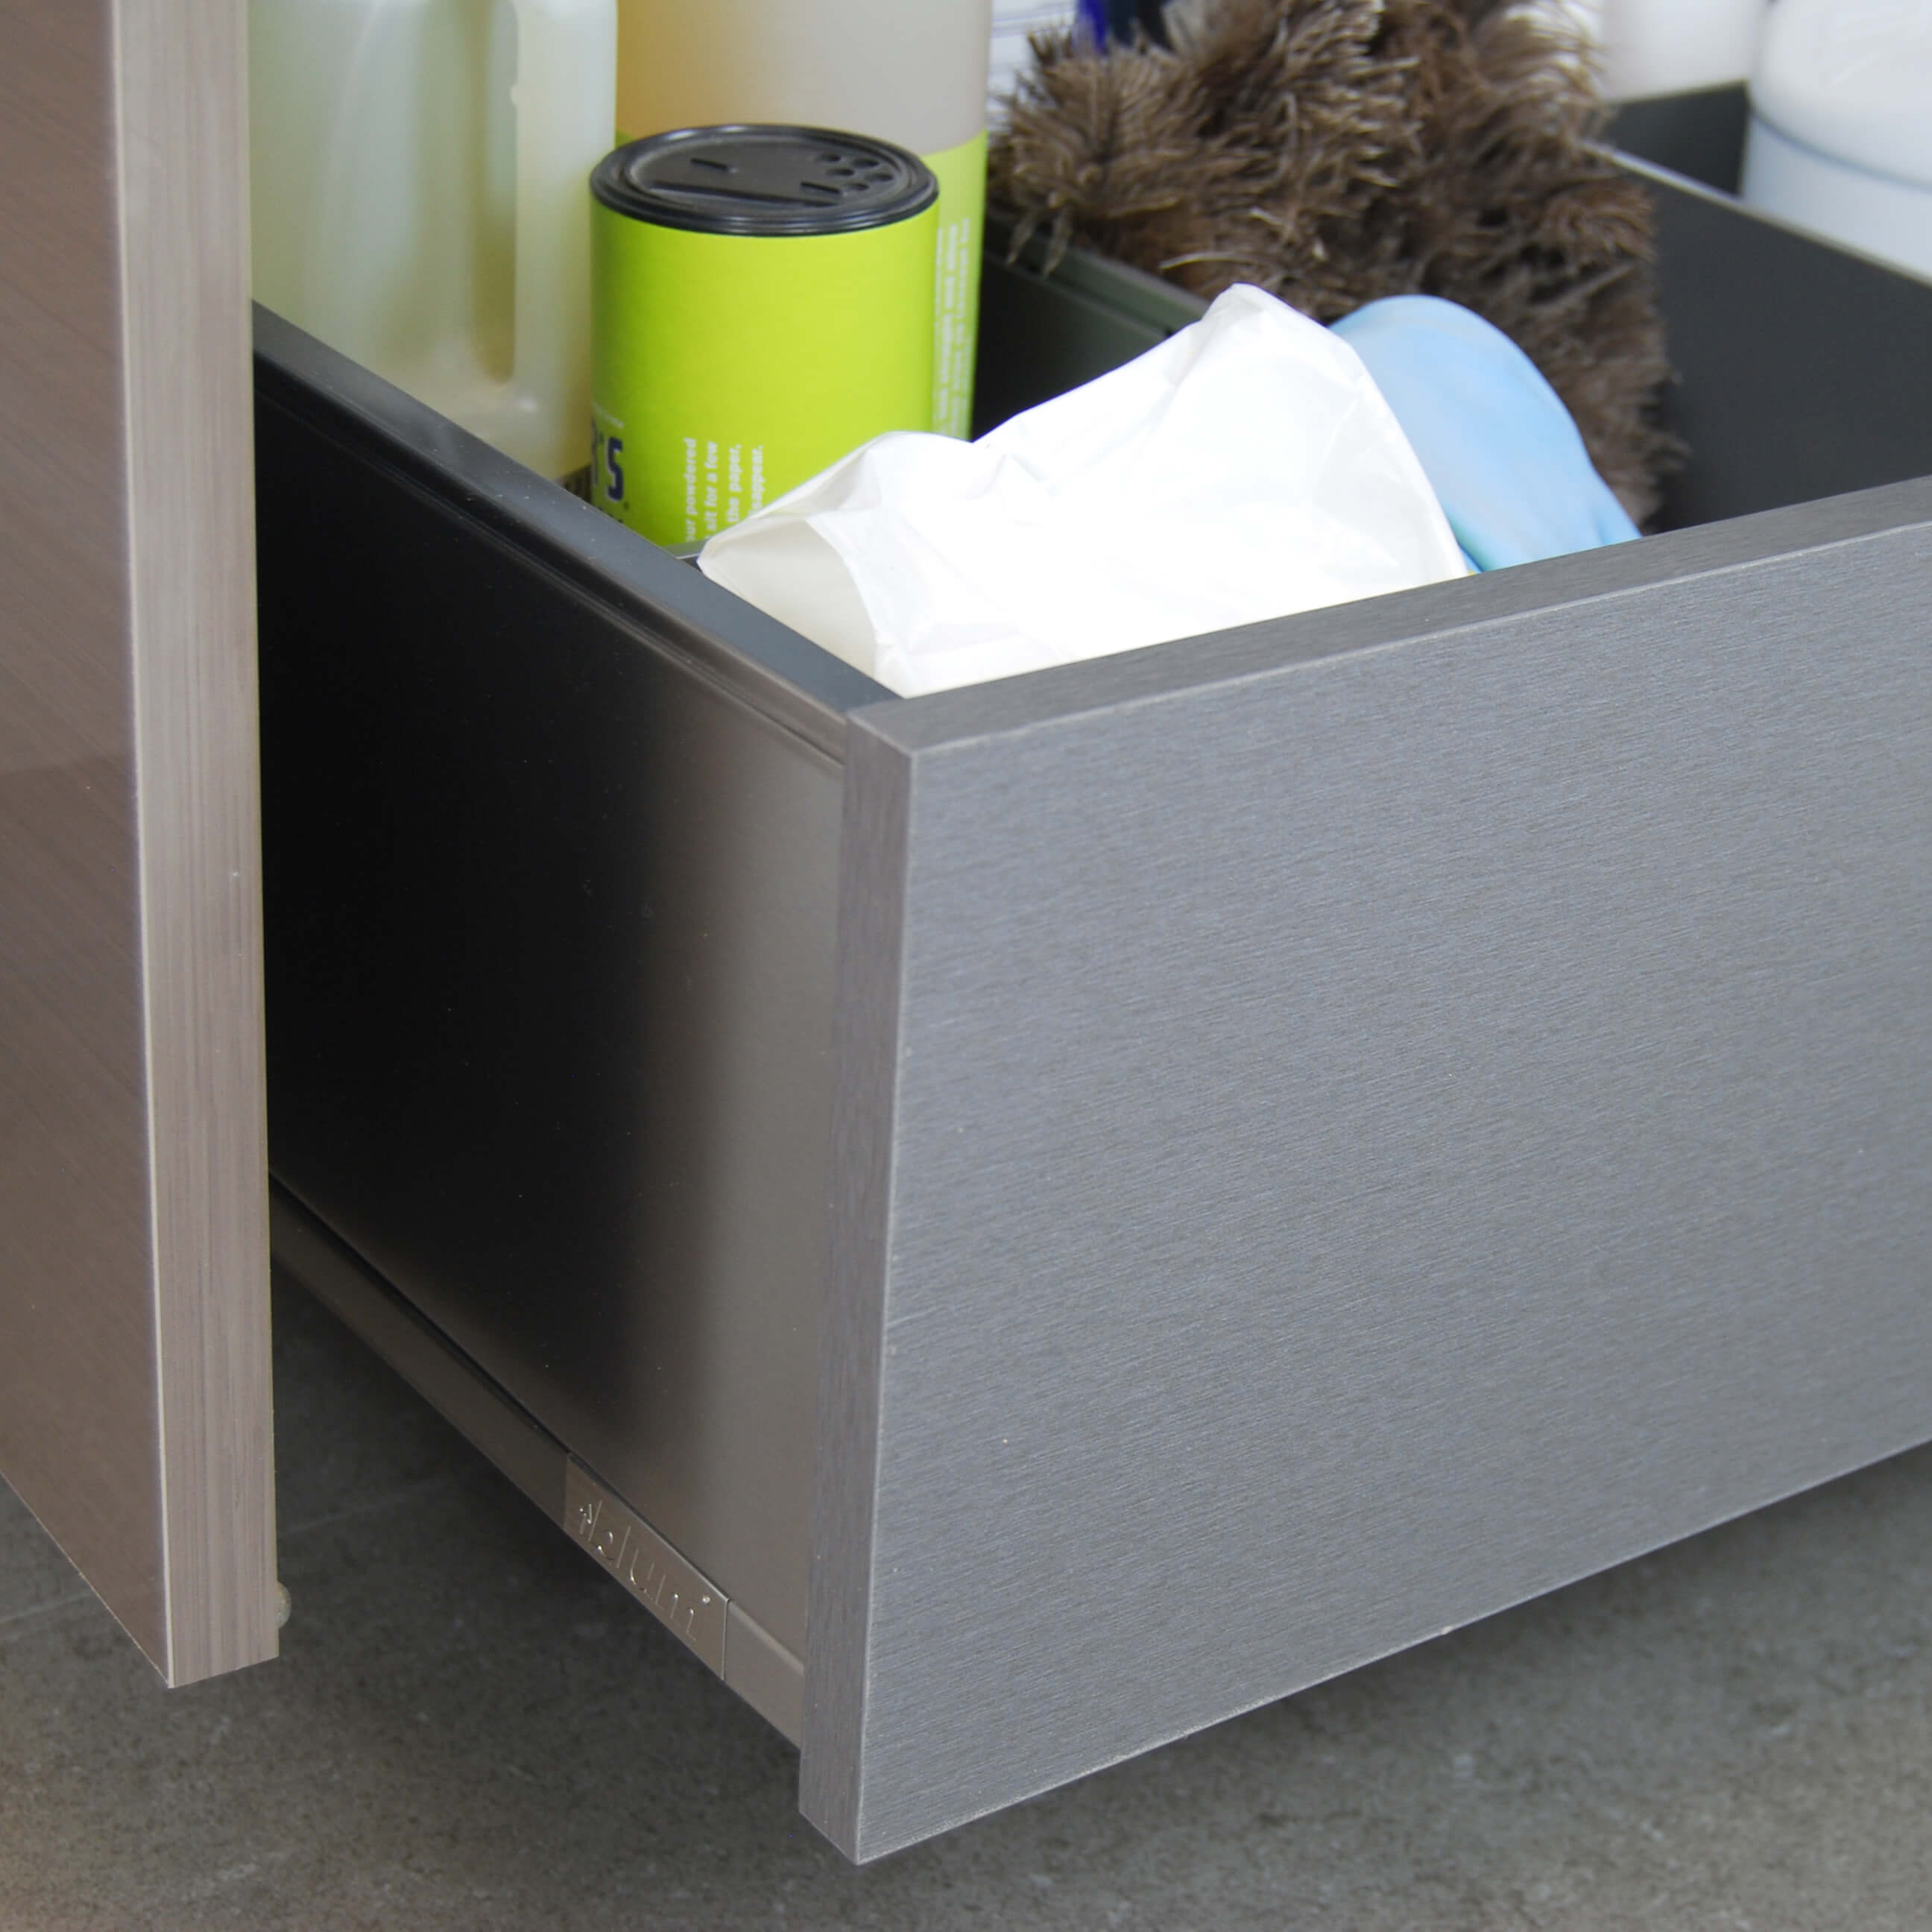 A standard wood roll-out or a stainless steel roll-out from Dura Supreme offers easy to access storage under the sink for organizing and storing cleaning supplies.